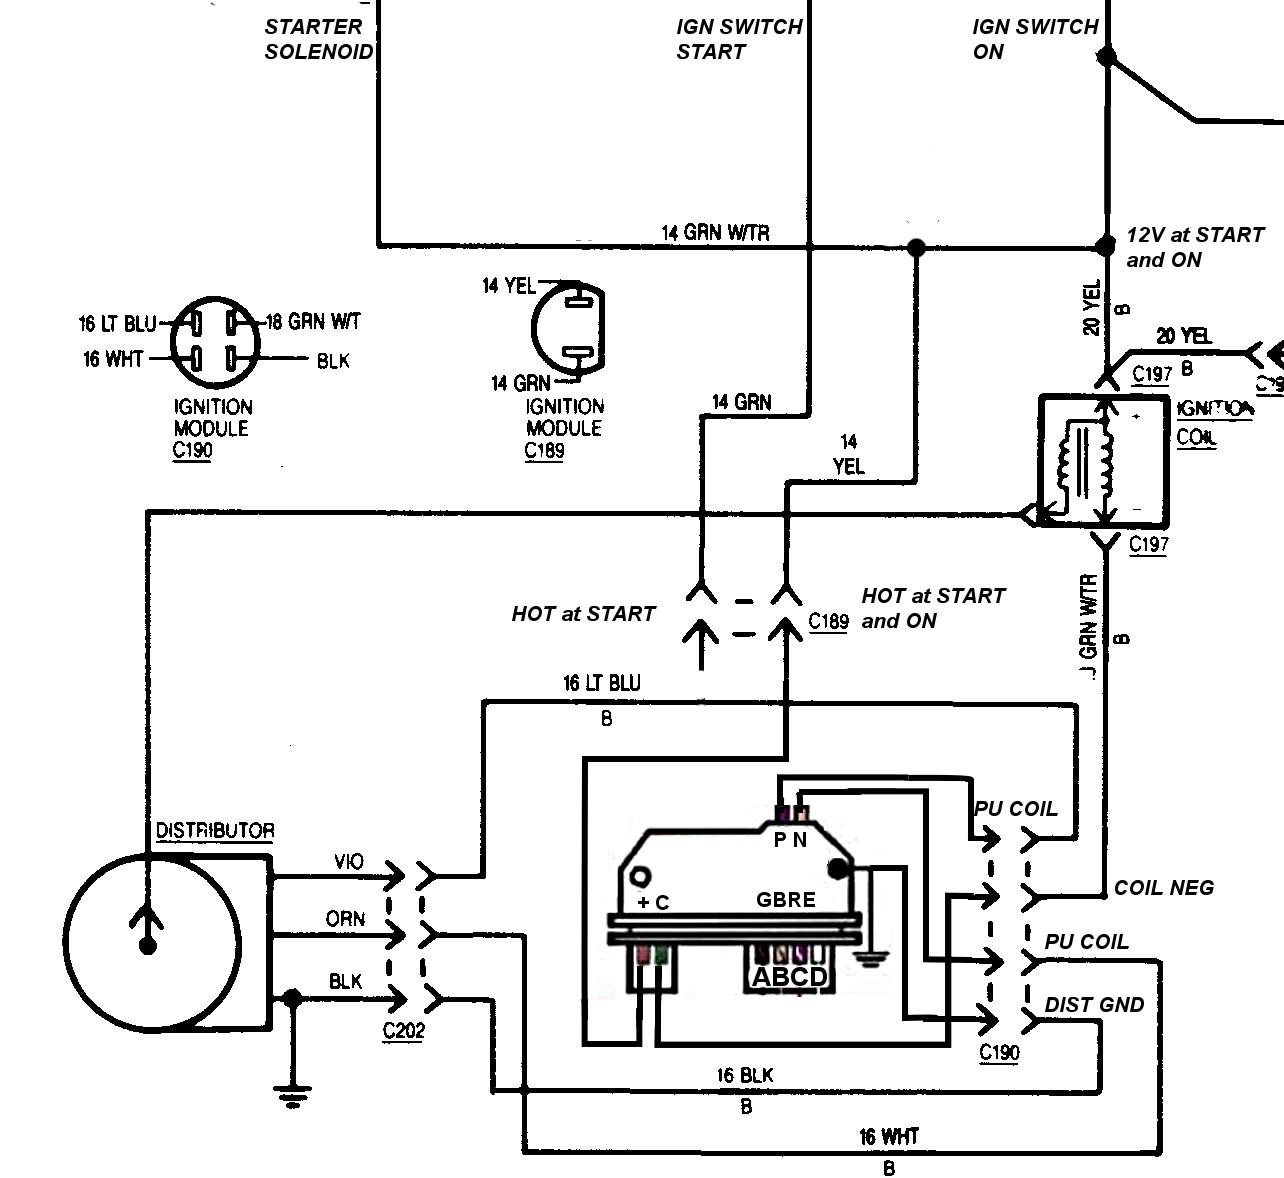 Tpi Fuel Injection Diagram Chevy Wiring Schematic Gm Module Diagrams Schematics Flowee Co Injector